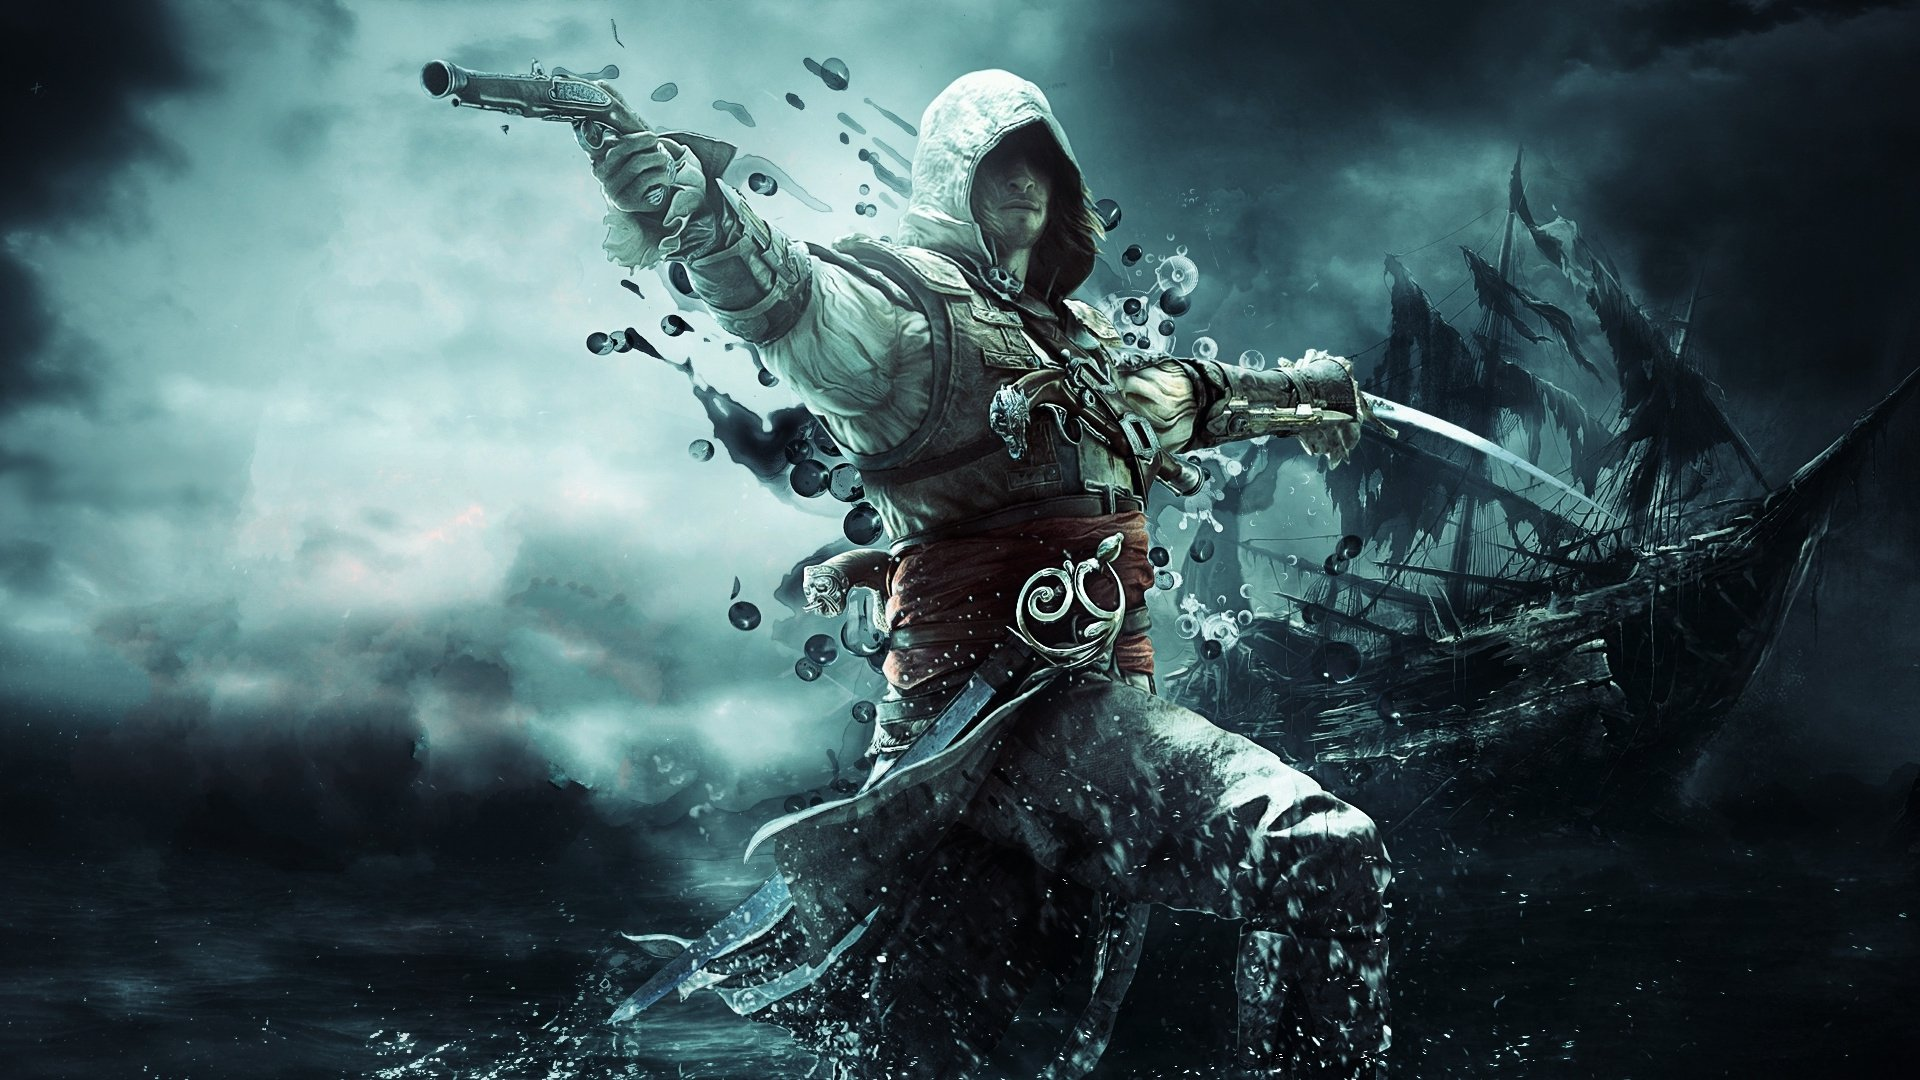 Assassins Creed IV Black Flag Fondo De Pantalla HD